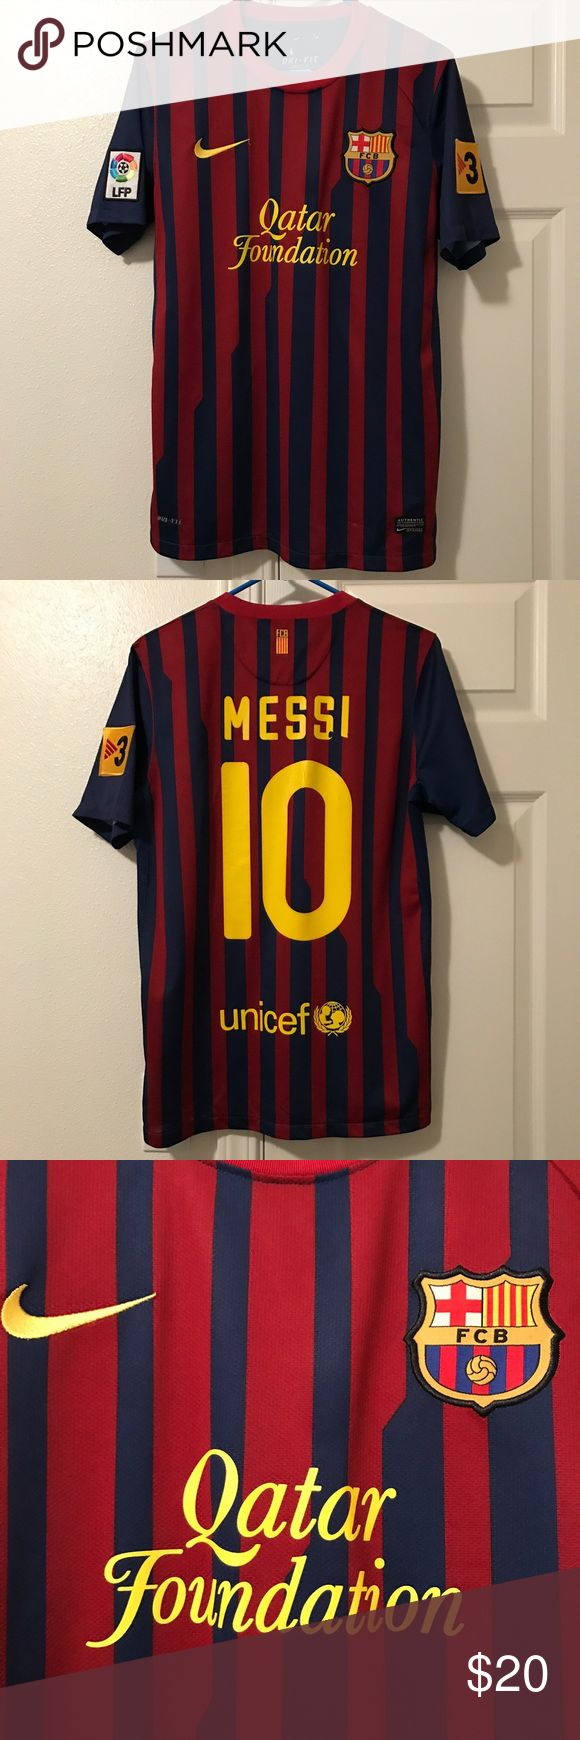 2011/2012 FC Barcelona Jersey - Lionel Messi 2011/2012 FC Barcelona - Lionel Messi Jersey. This was the first year that Qatar Foundation was front and center. The UNICEF logo is in the lower back. Must have for any FC Barcelona and Messi fan. There is some cracking and peeling on the back. Reasonable offers gladly accepted. #fcbarcelona #fcbarcelonajersey #jersey #fcb #soccerjersey #lionelmessi #messi #nike #nikejersey #messijersey #classicjersey#nikesoccer #soccer Nike Shirts